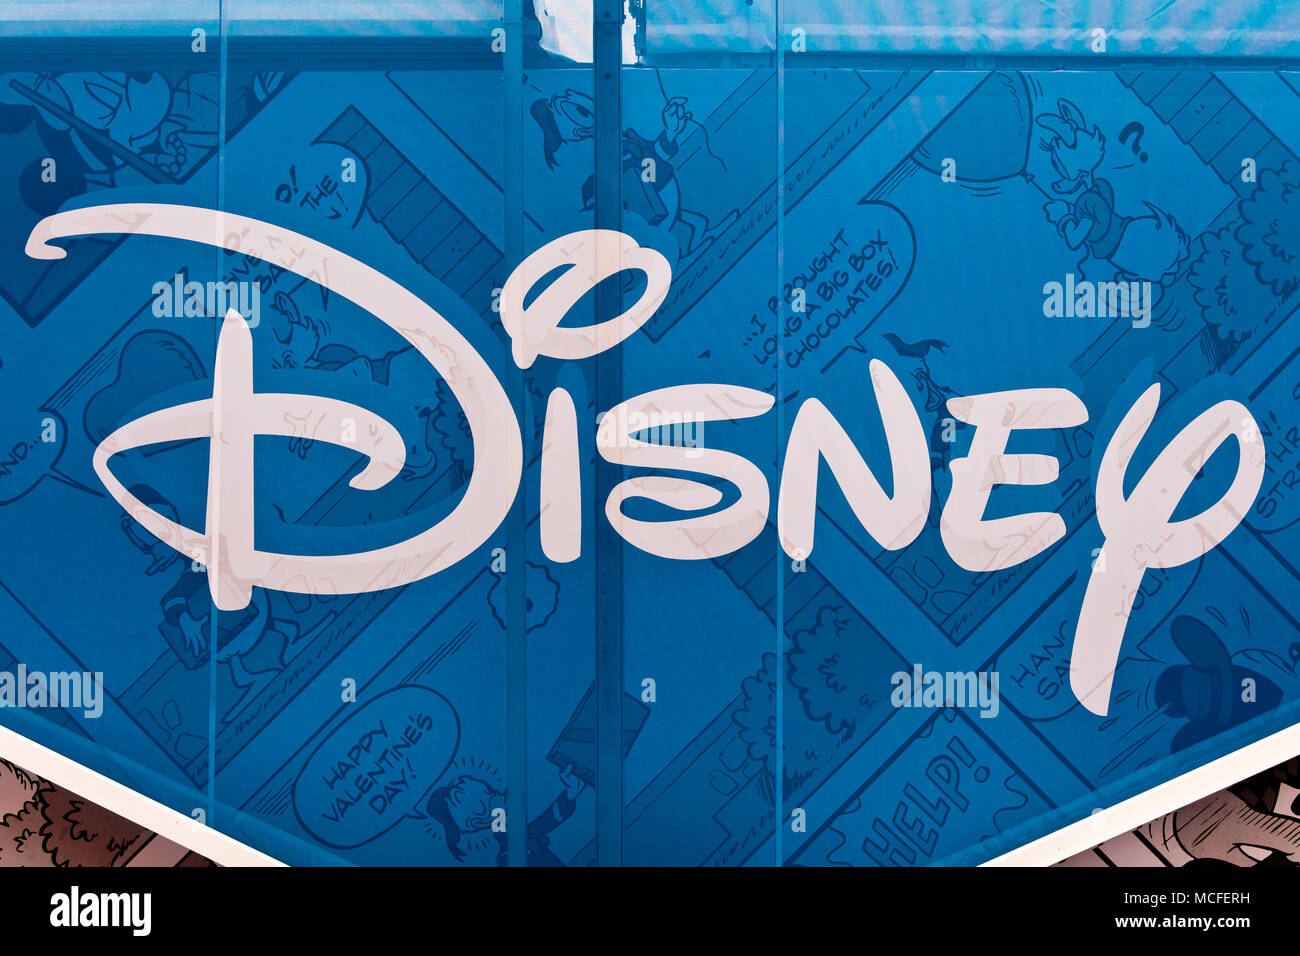 Disney sign stock photos disney sign stock images alamy disney logo sign printed on banner the walt disney company commonly known as disney biocorpaavc Choice Image